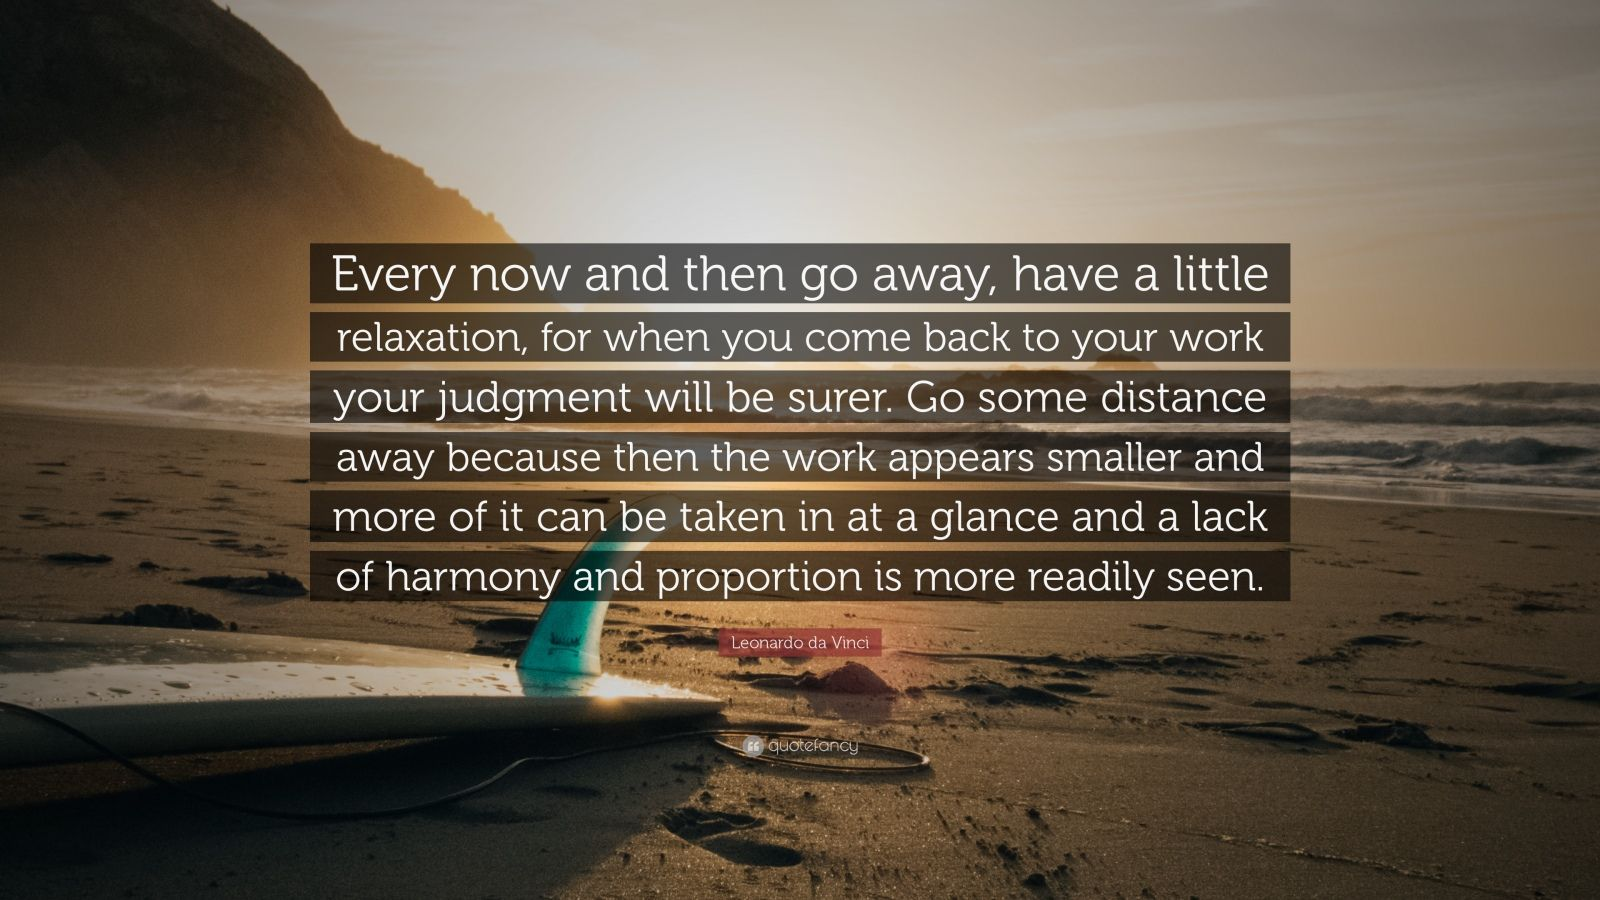 """Leonardo da Vinci Quote: """"Every now and then go away, have a little relaxation, for when you come back to your work your judgment will be surer. Go some distance away because then the work appears smaller and more of it can be taken in at a glance and a lack of harmony and proportion is more readily seen."""""""